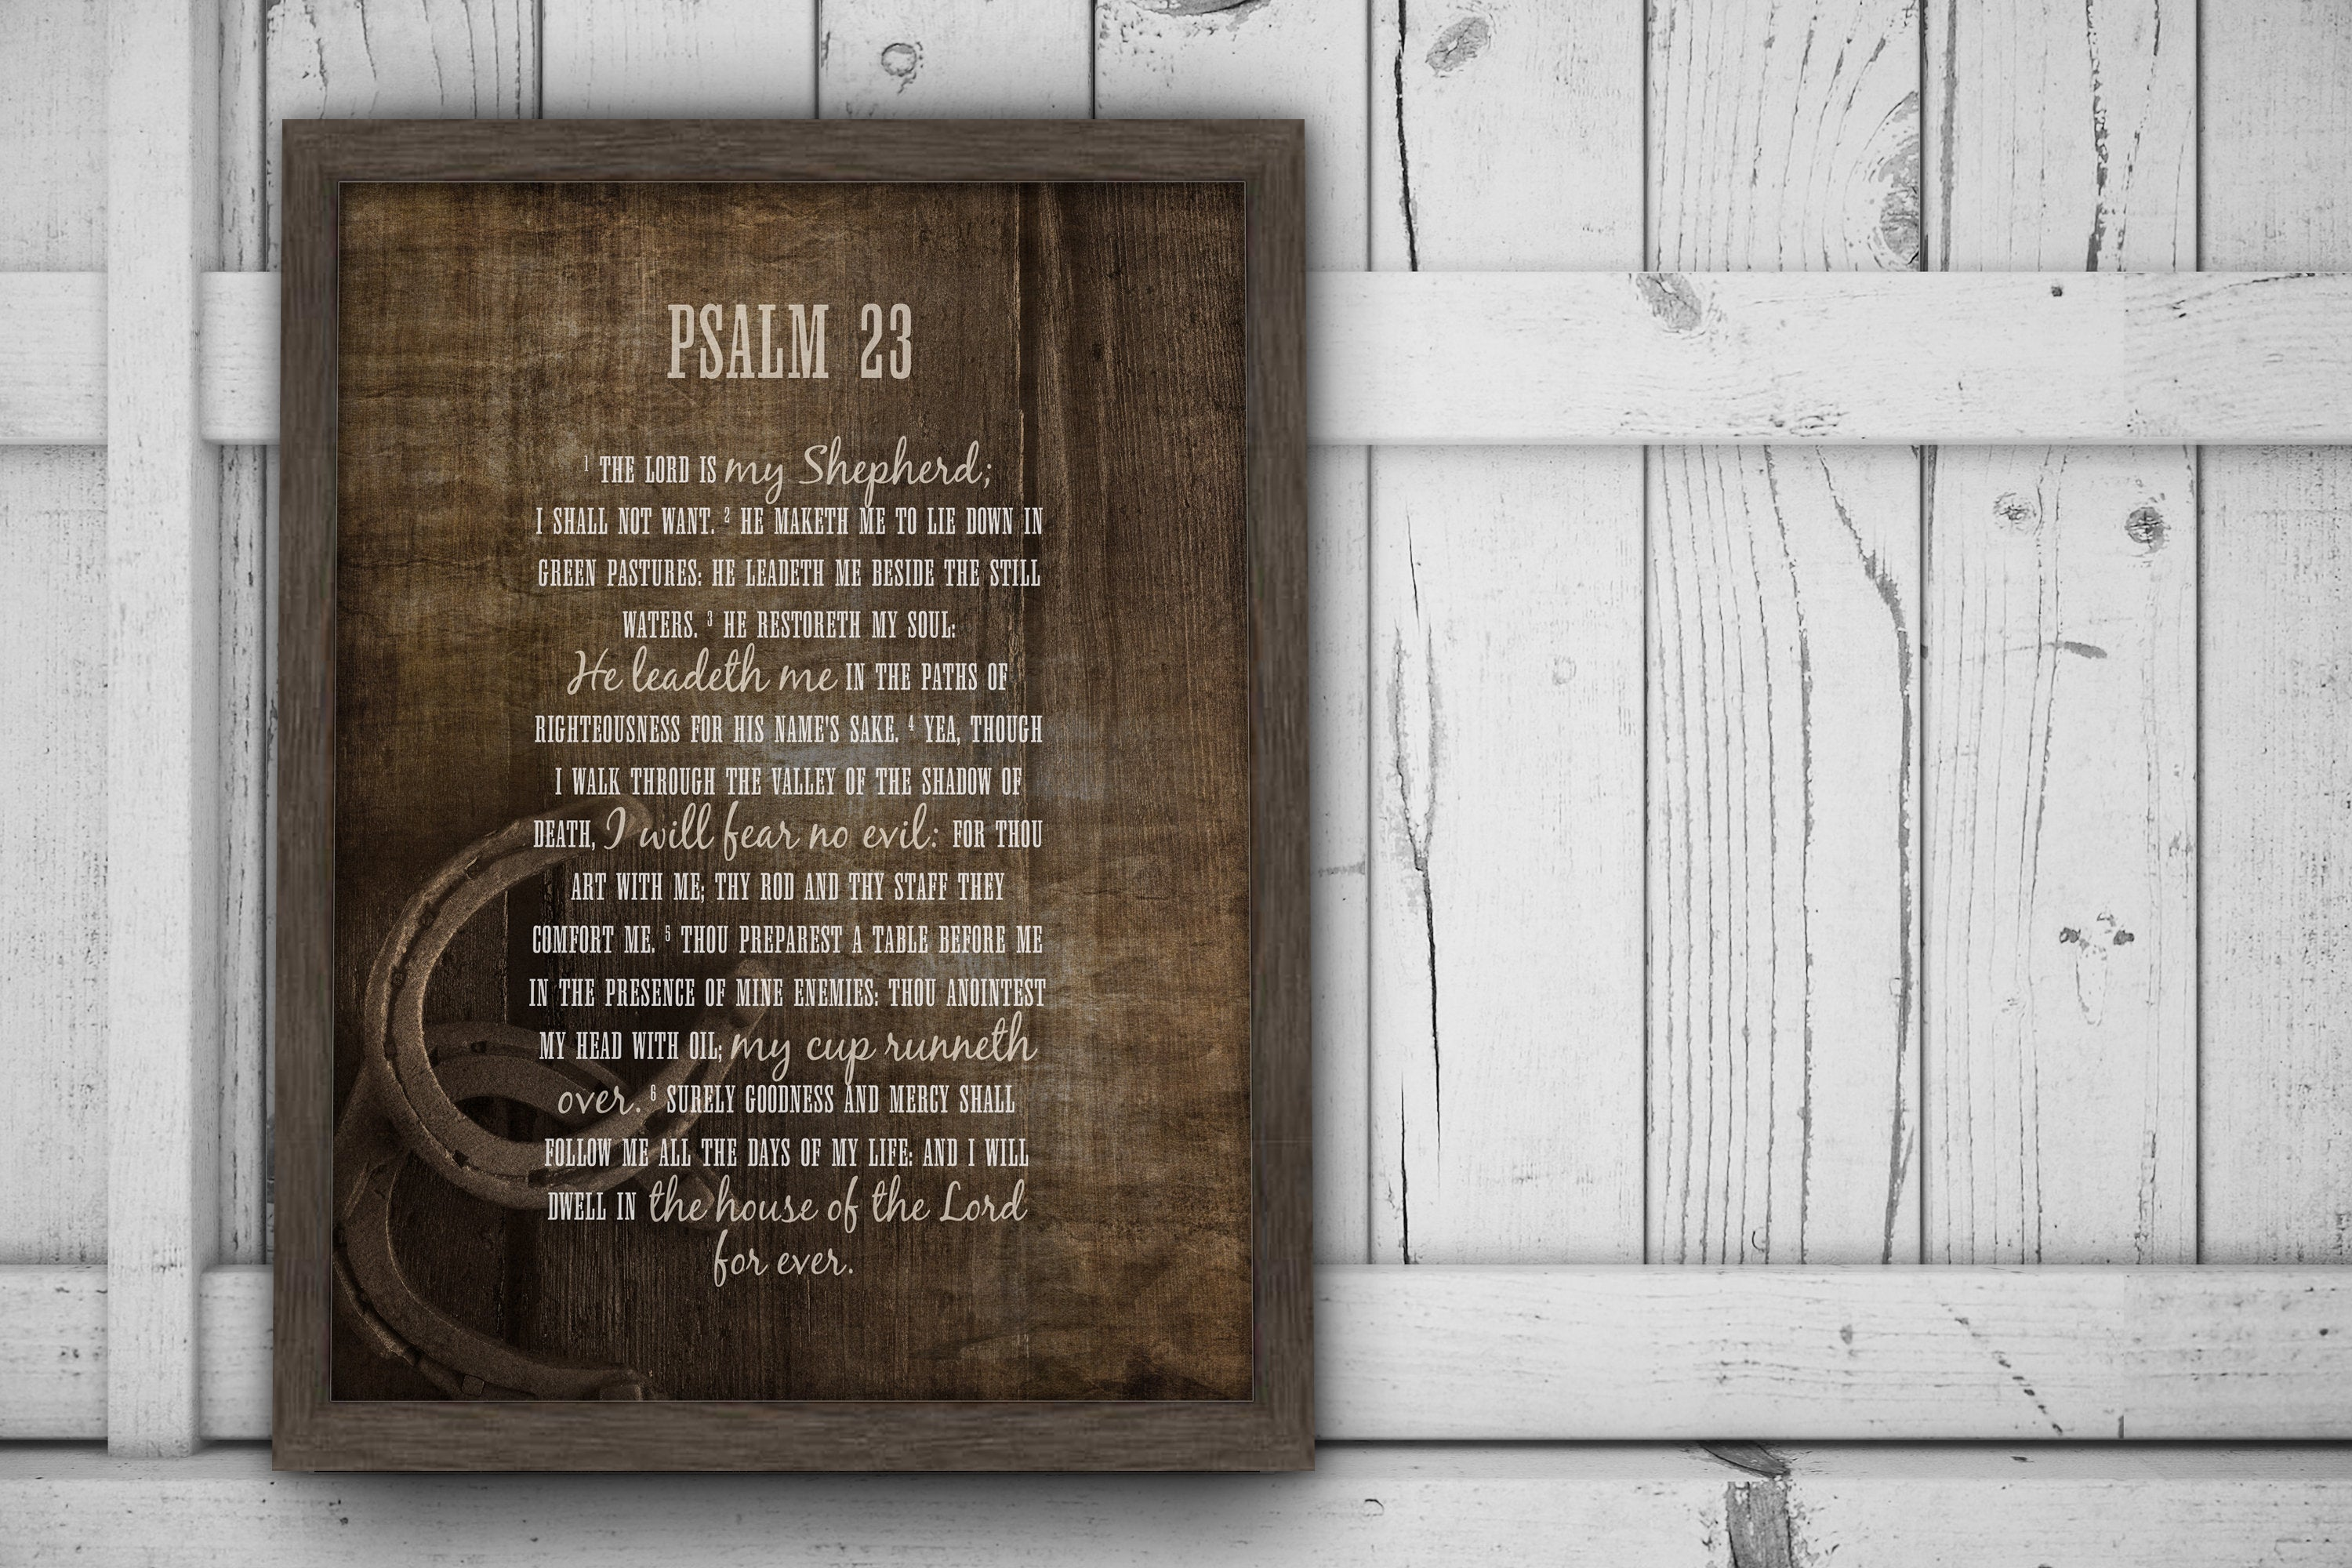 Psalm 23 Farmhouse Art, Rustic Christian Wall Art, Framed Christian Art, The Lord Is My Shepherd, Christian Wood Art, Horseshoe, Weathered